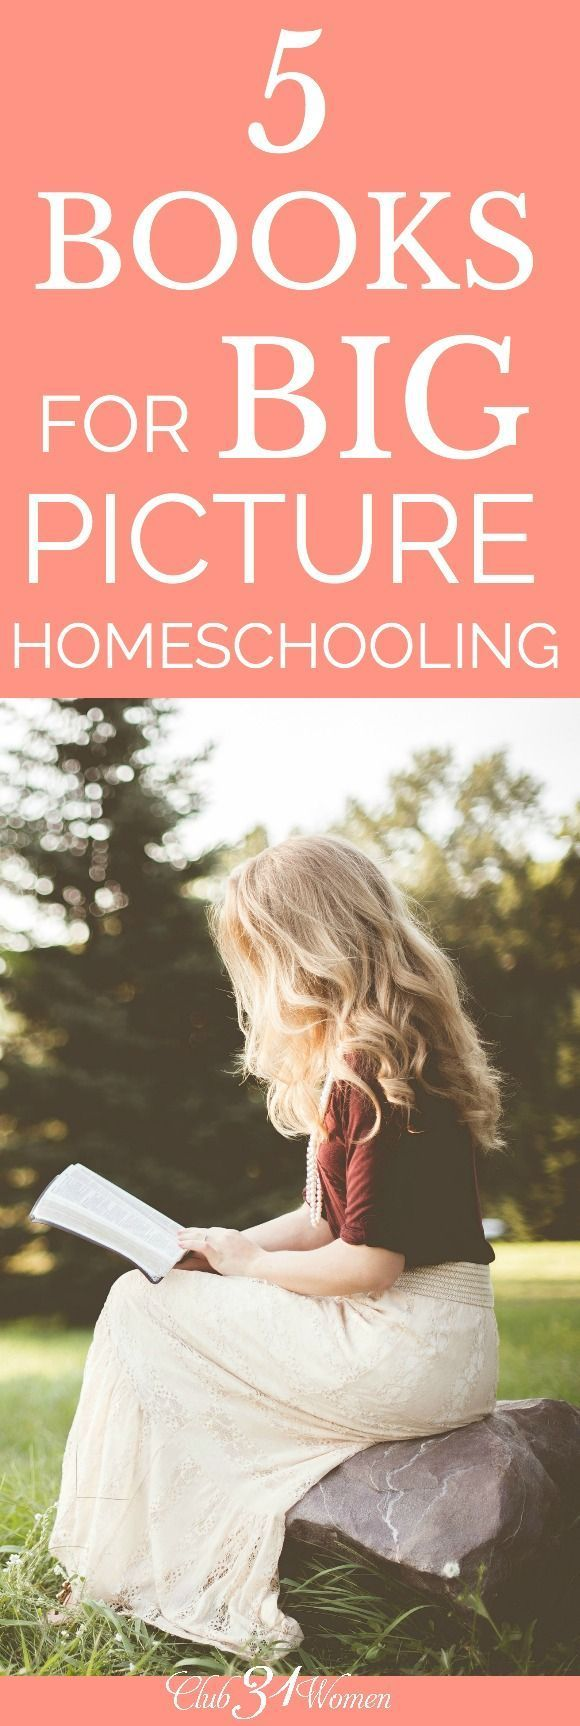 How can you keep the big picture in mind while you're homeschooling? Here are some excellent guide and reference books to get you started! via /Club31Women/